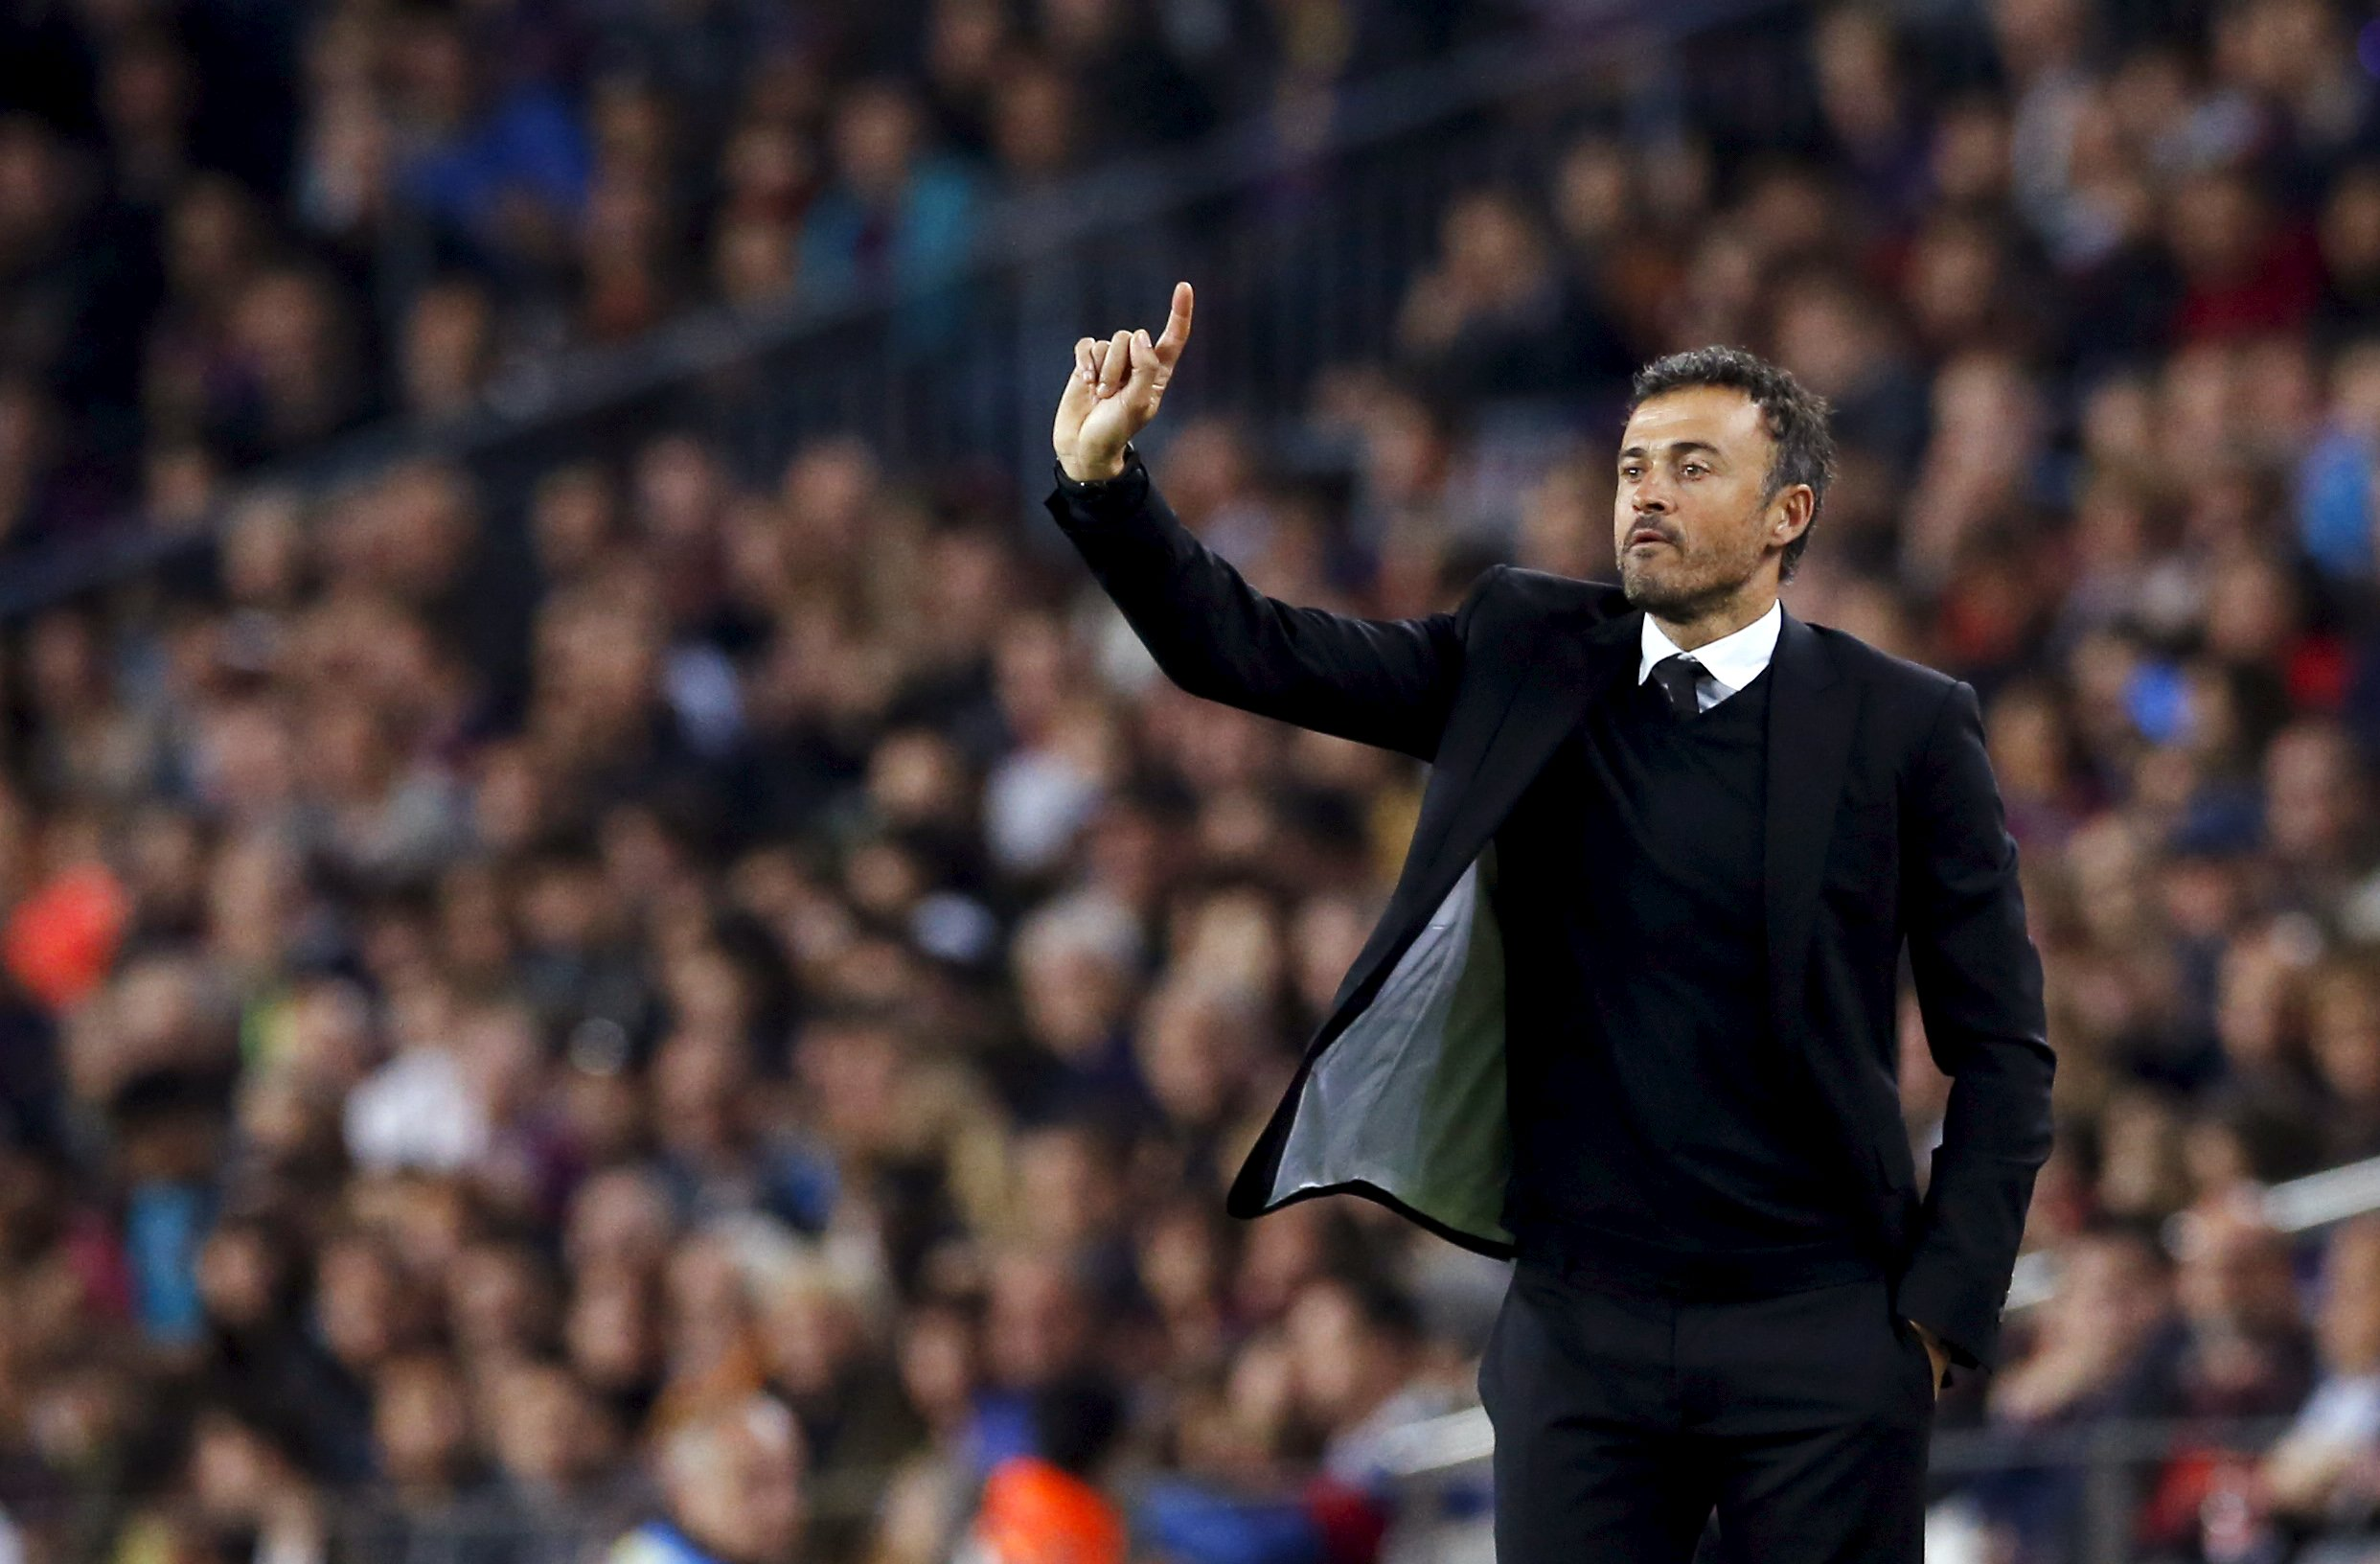 Barcelona's coach Luis Enrique gestures during their Spanish first division soccer match at Camp Nou stadium in Barcelona, Spain, October 25, 2015. Photo: Reuters